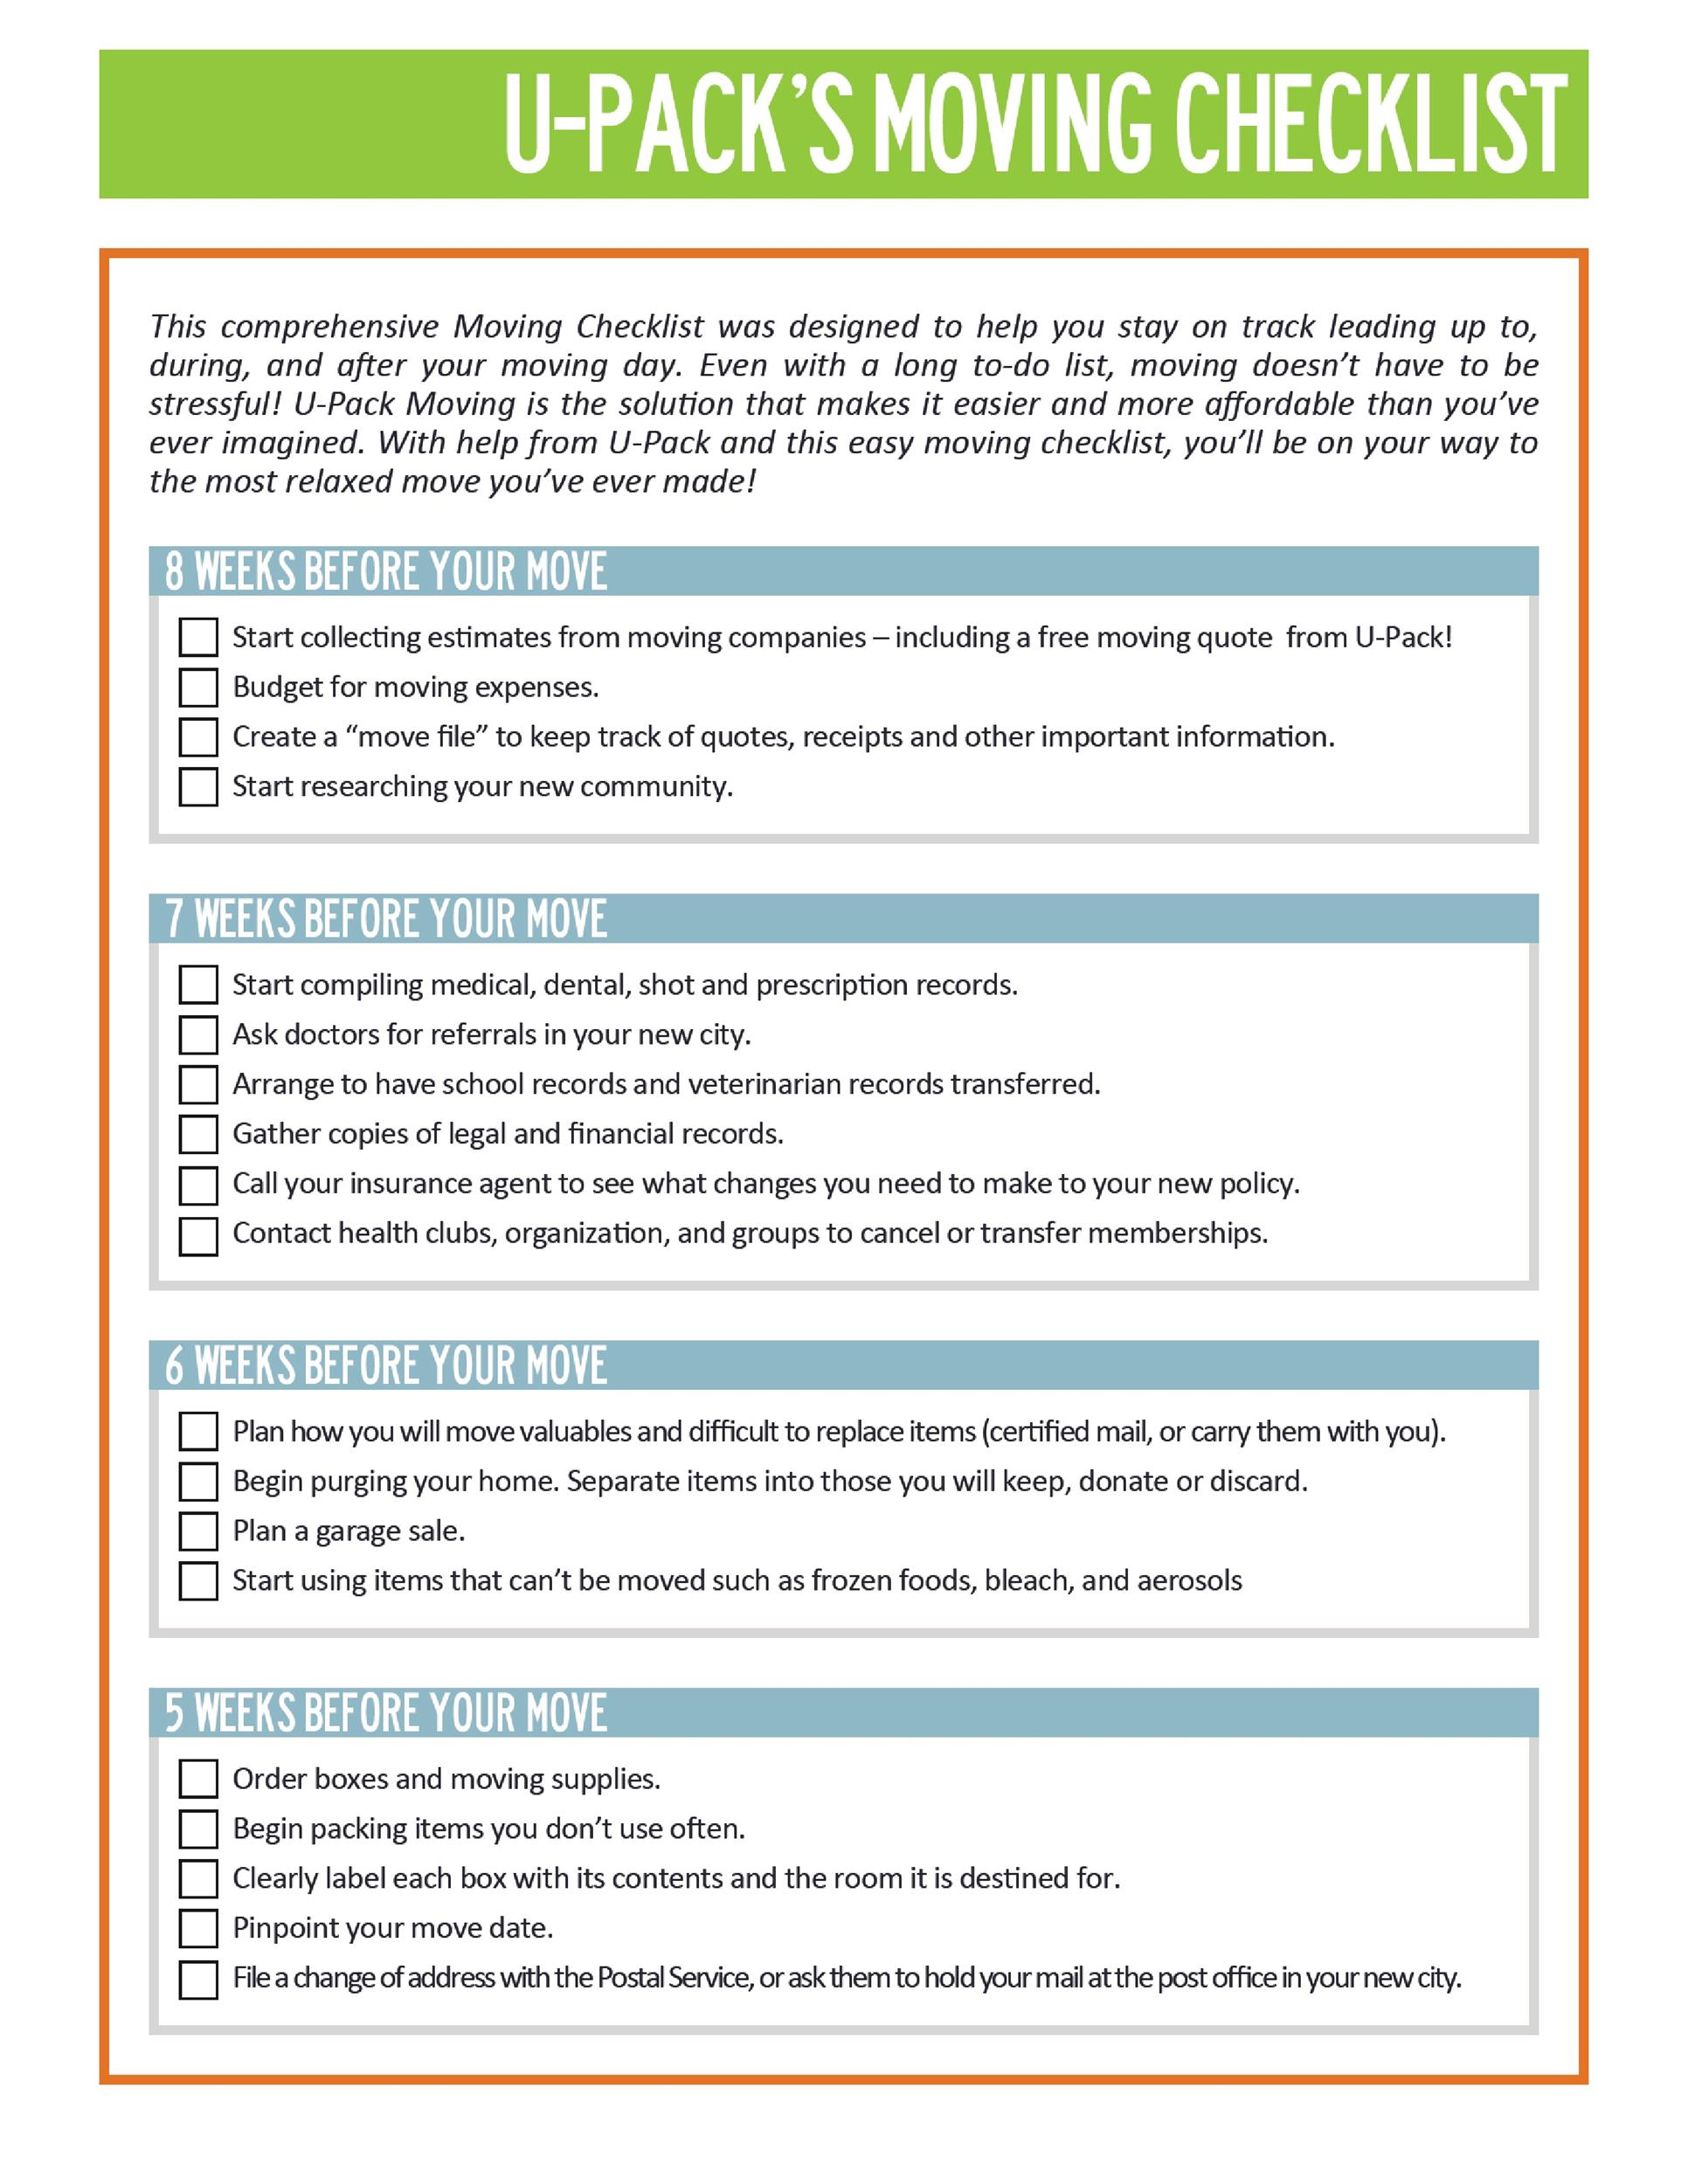 Free moving checklist 11